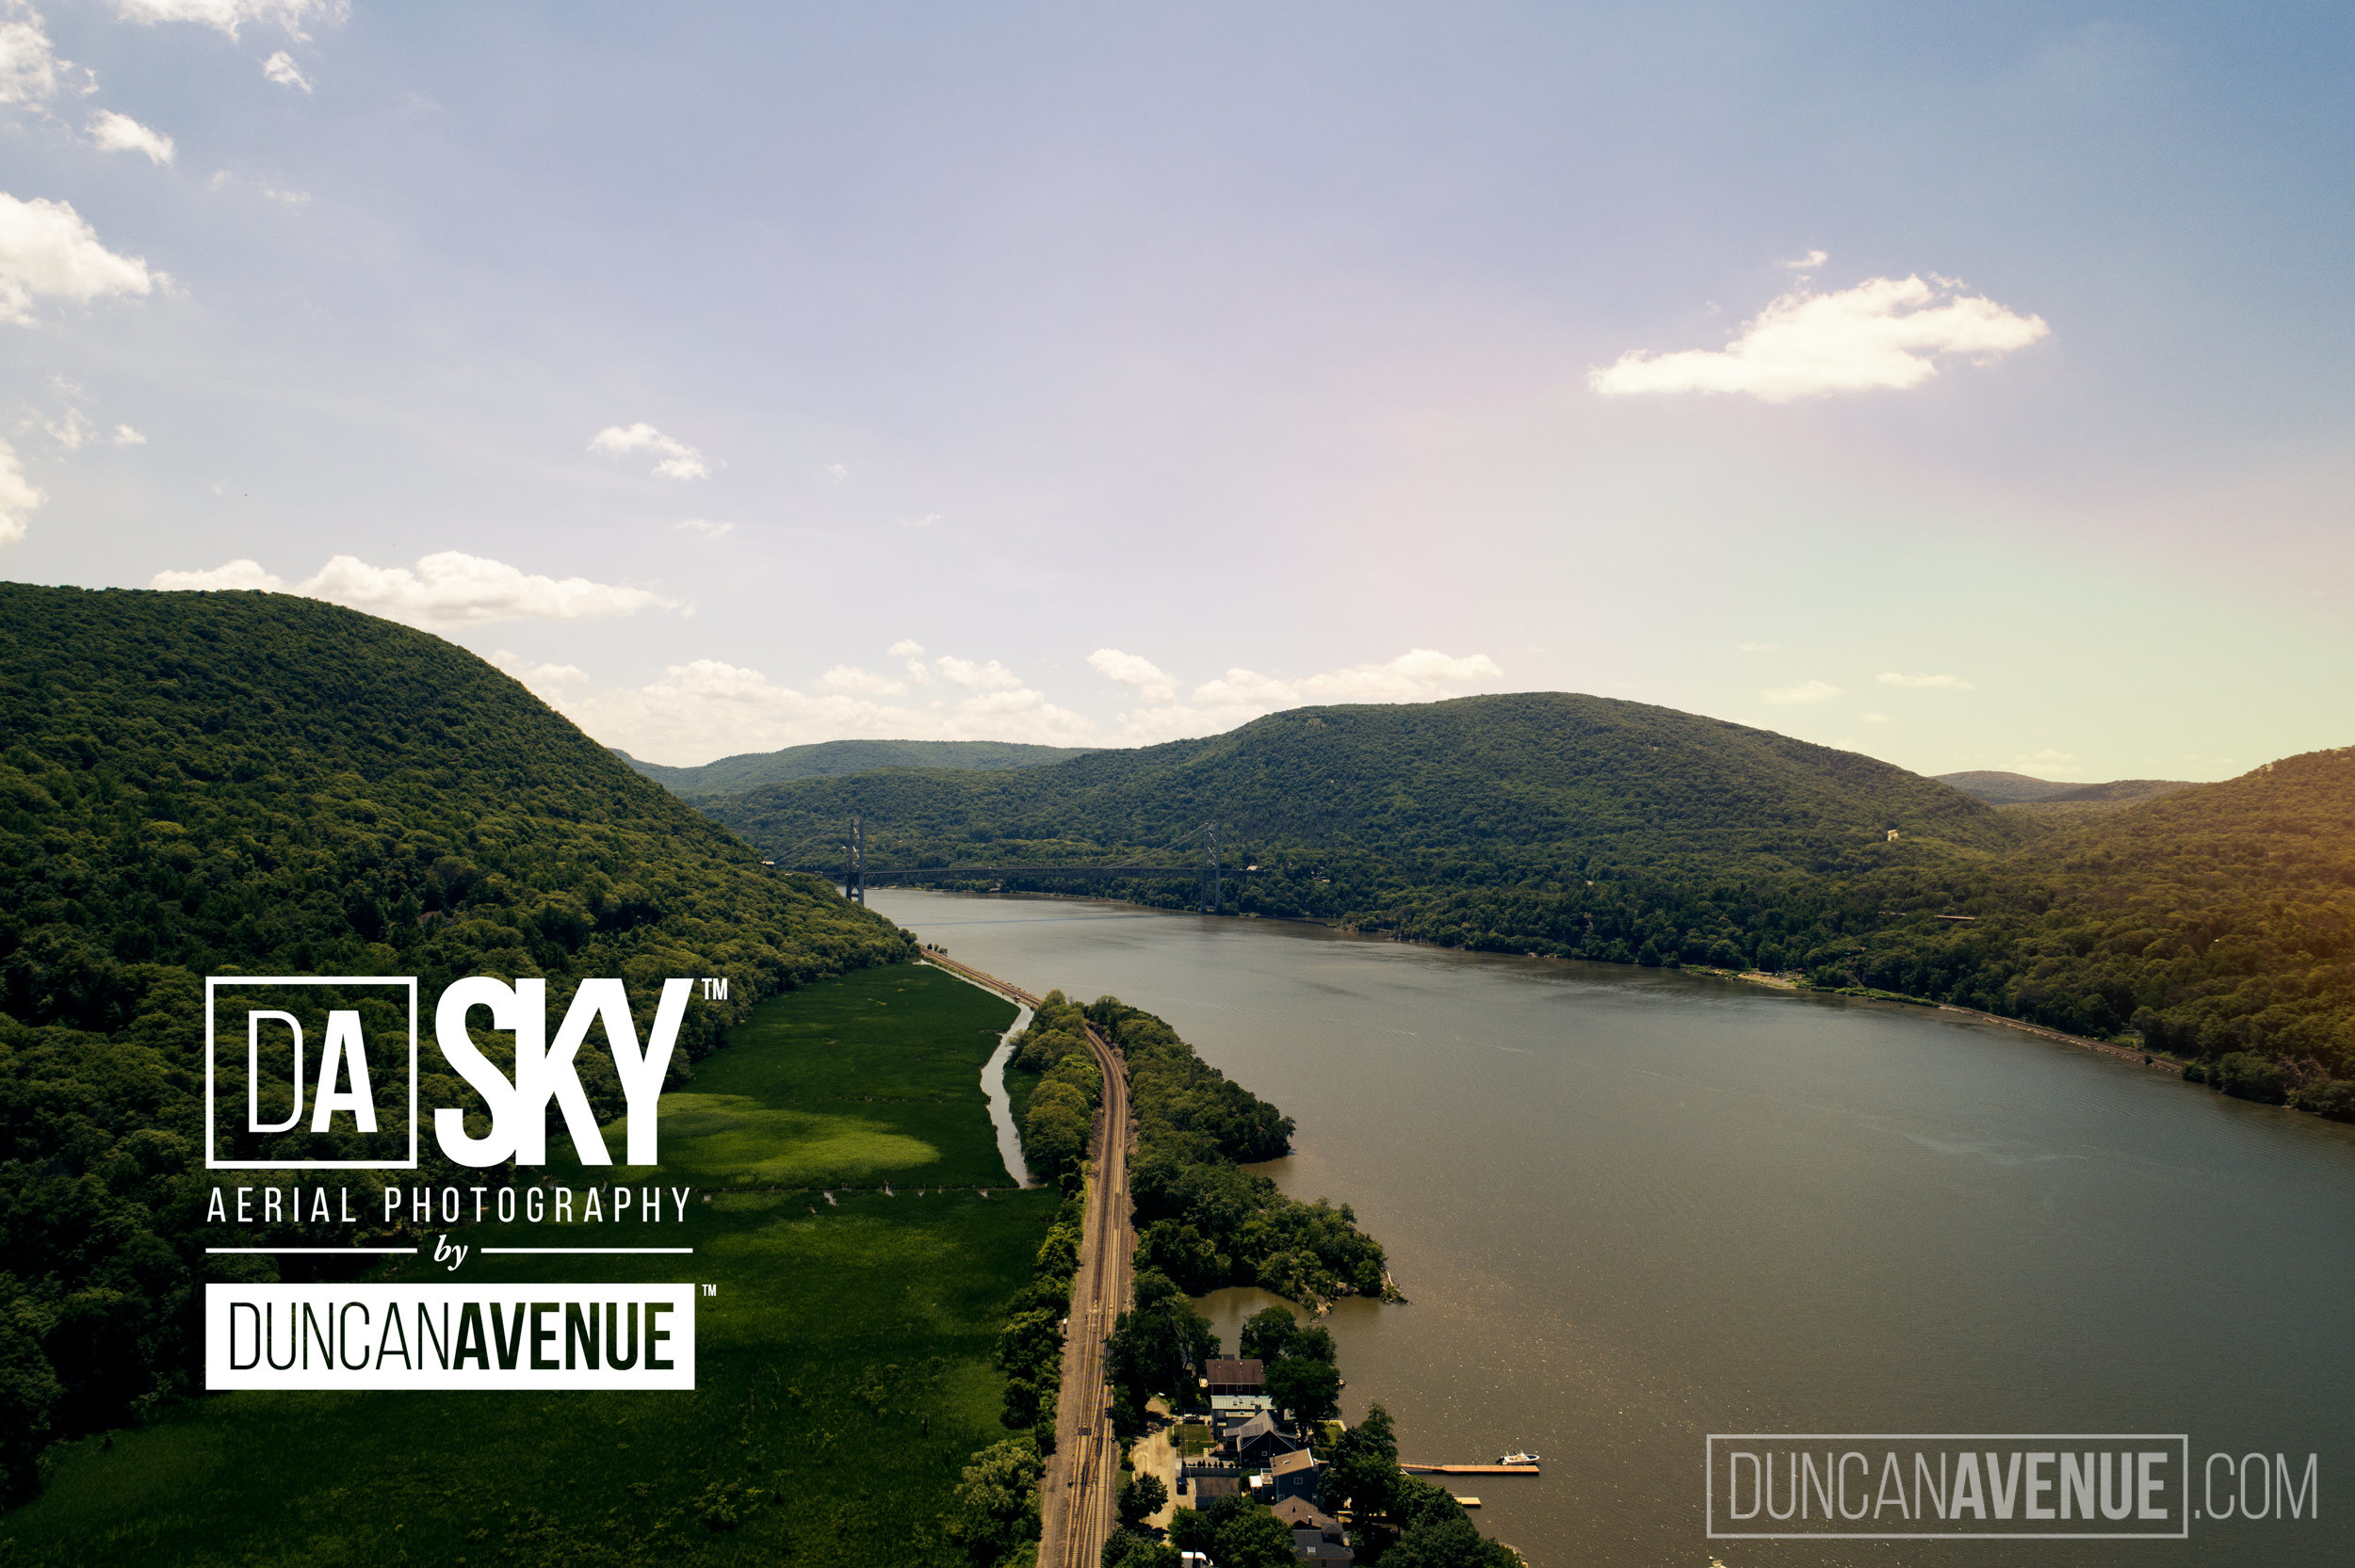 DA SKY - Aerial Real Estate Photography in Hudson Valley, New York